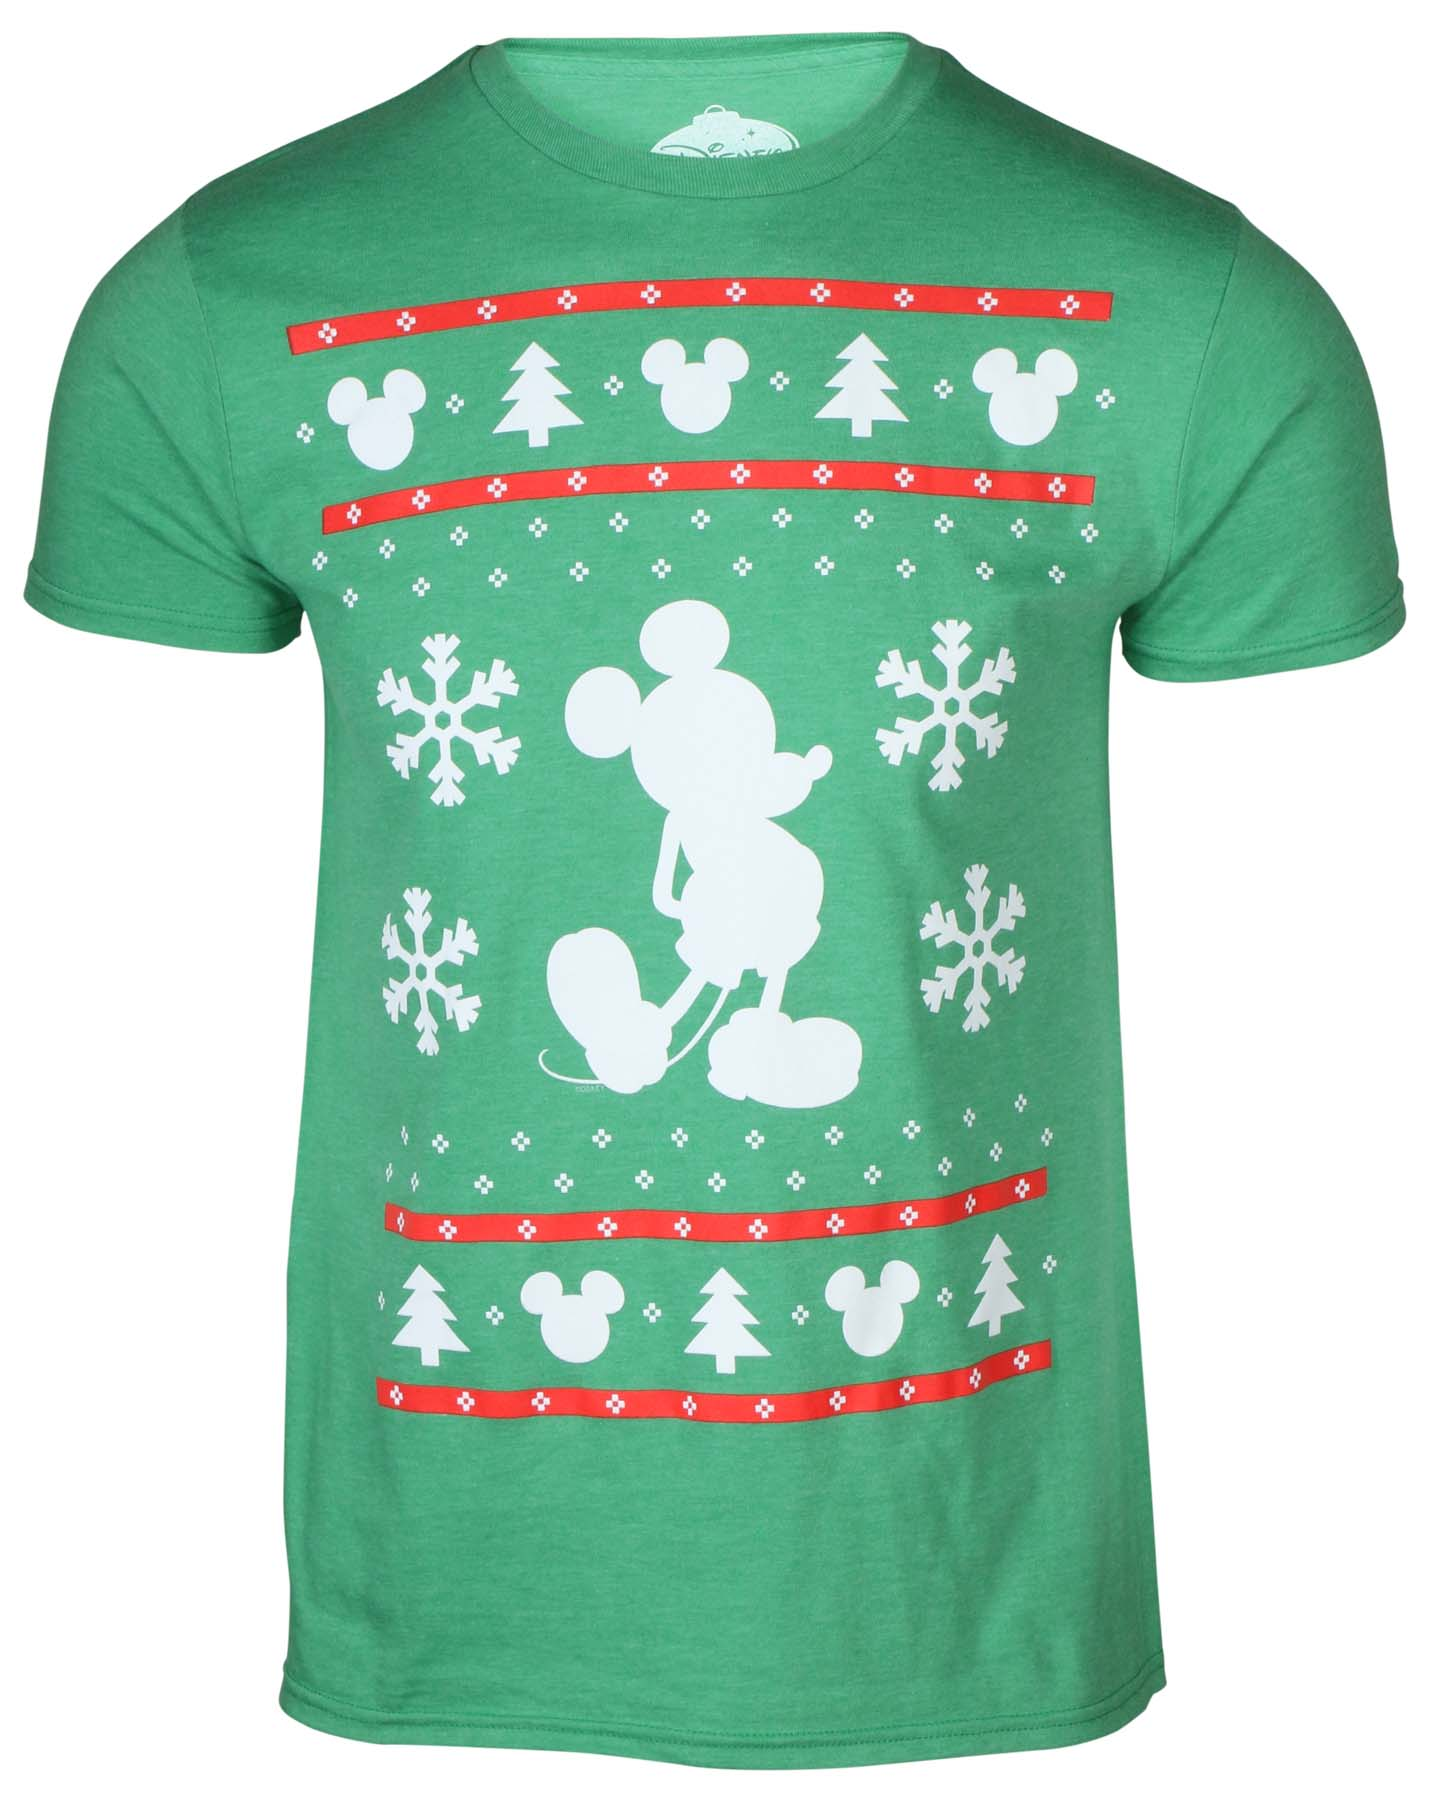 c79625a82dd7d Mickey Mouse Christmas Shirts For Adults